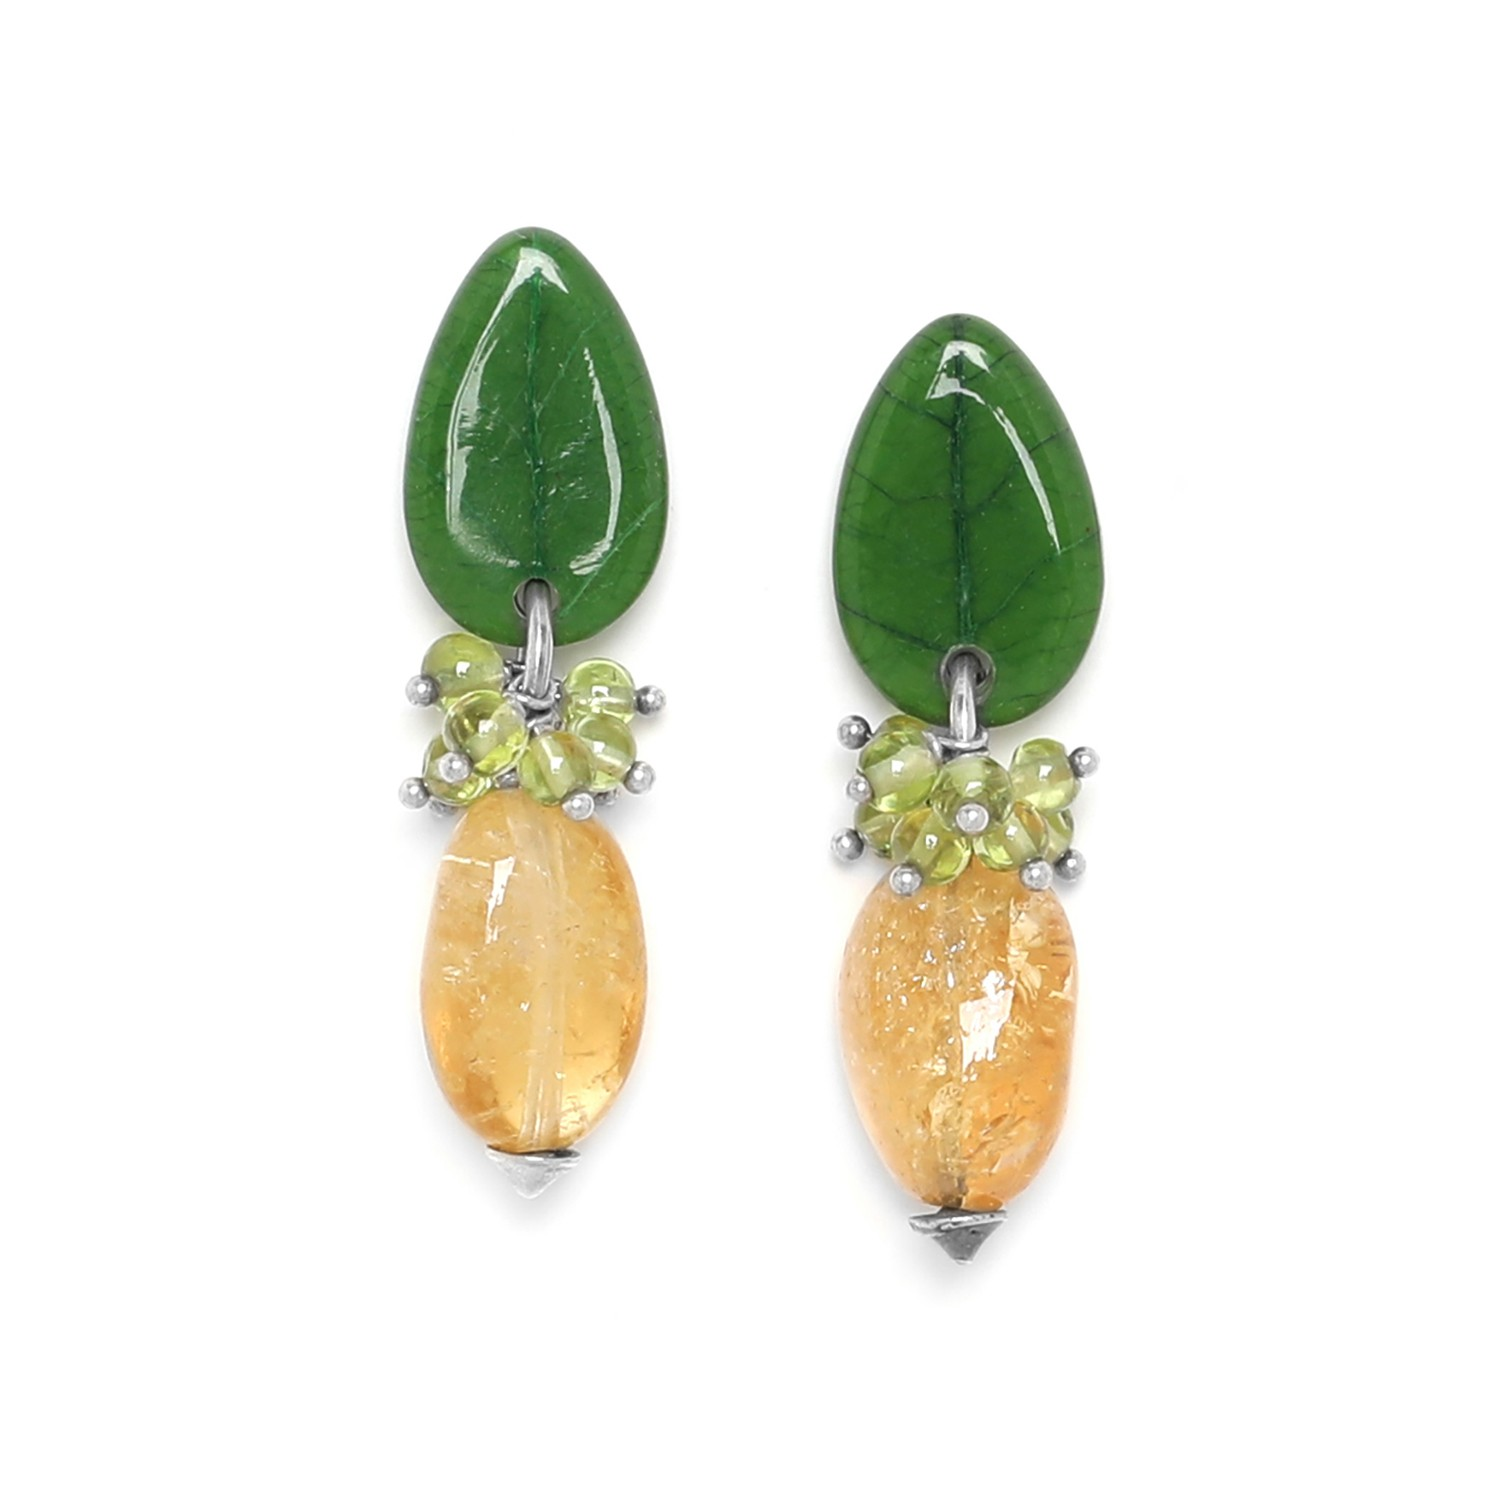 CITRUS citrin earrings